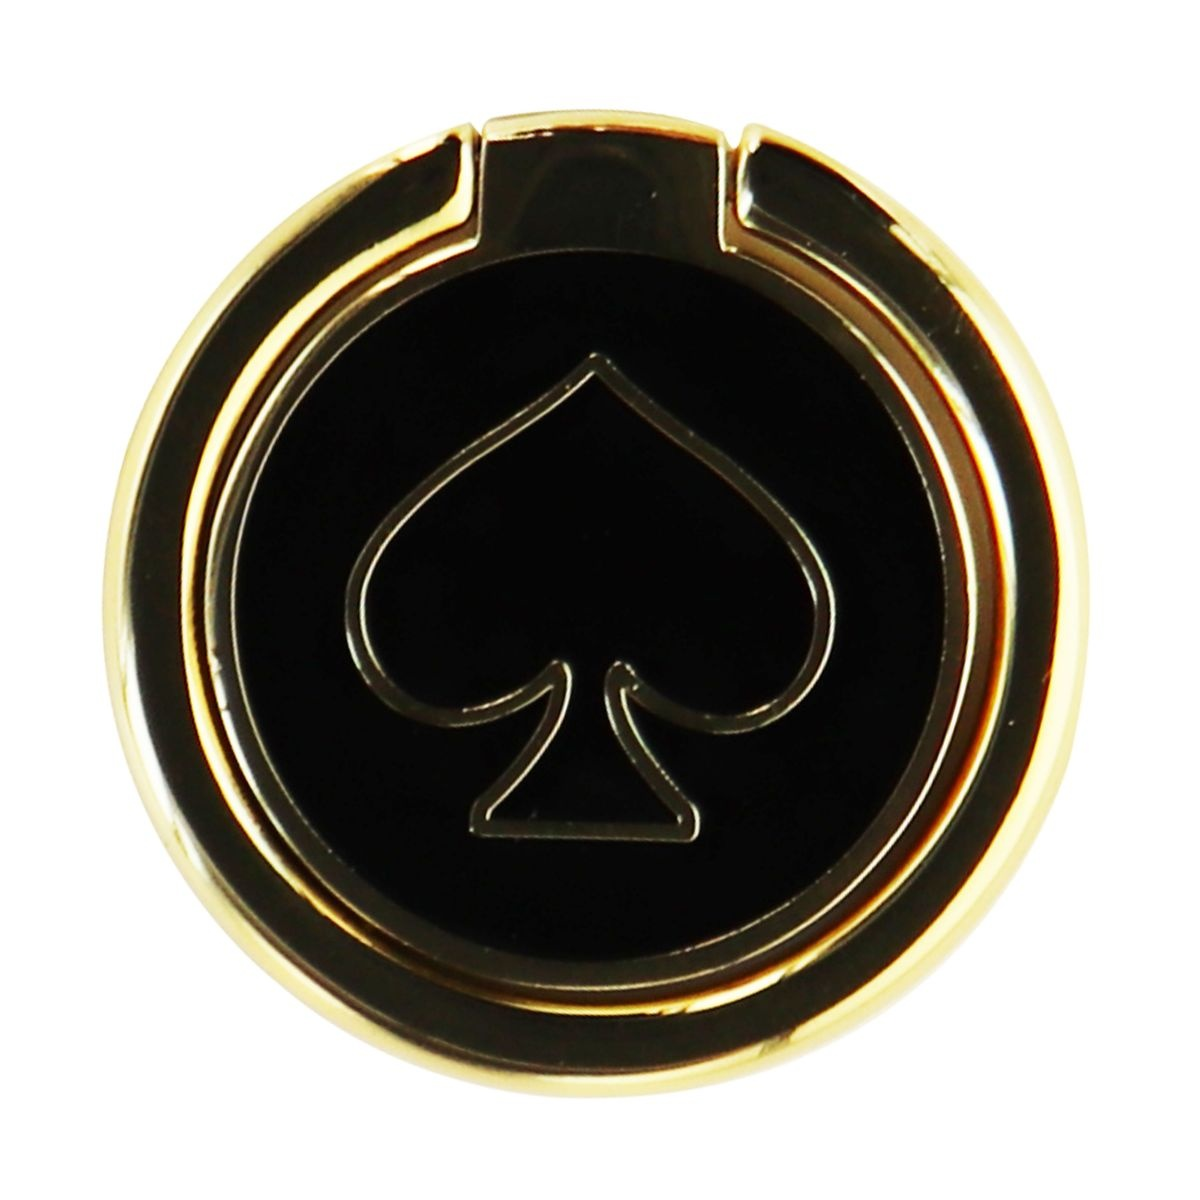 Kate Spade New York Attachable Stability Ring for Phones and Cases - Gold/Black